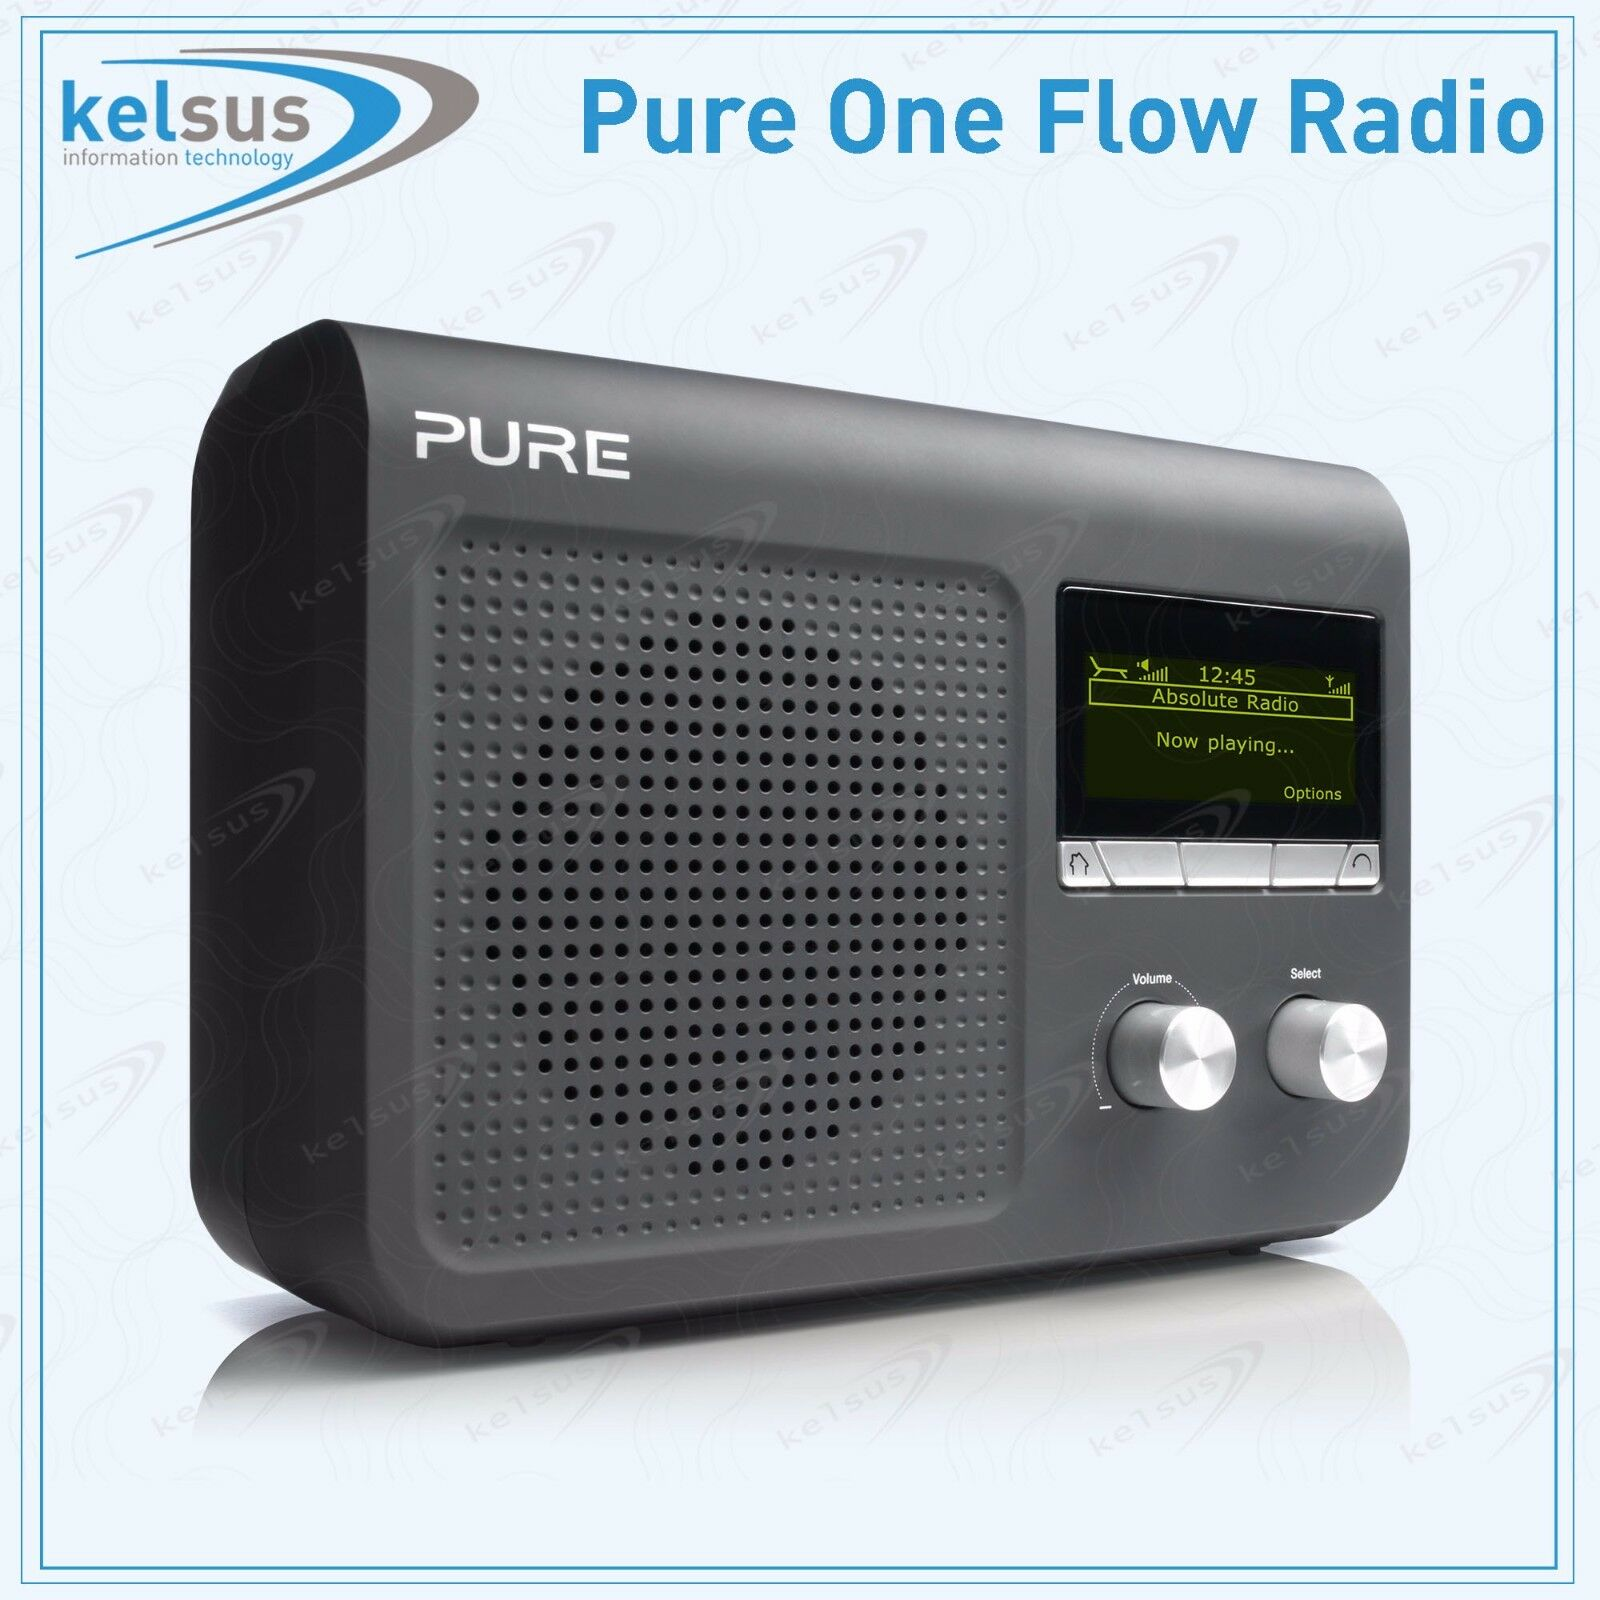 pure one flow portable tabletop dab dab digital fm radio alarm clock usb bla. Black Bedroom Furniture Sets. Home Design Ideas